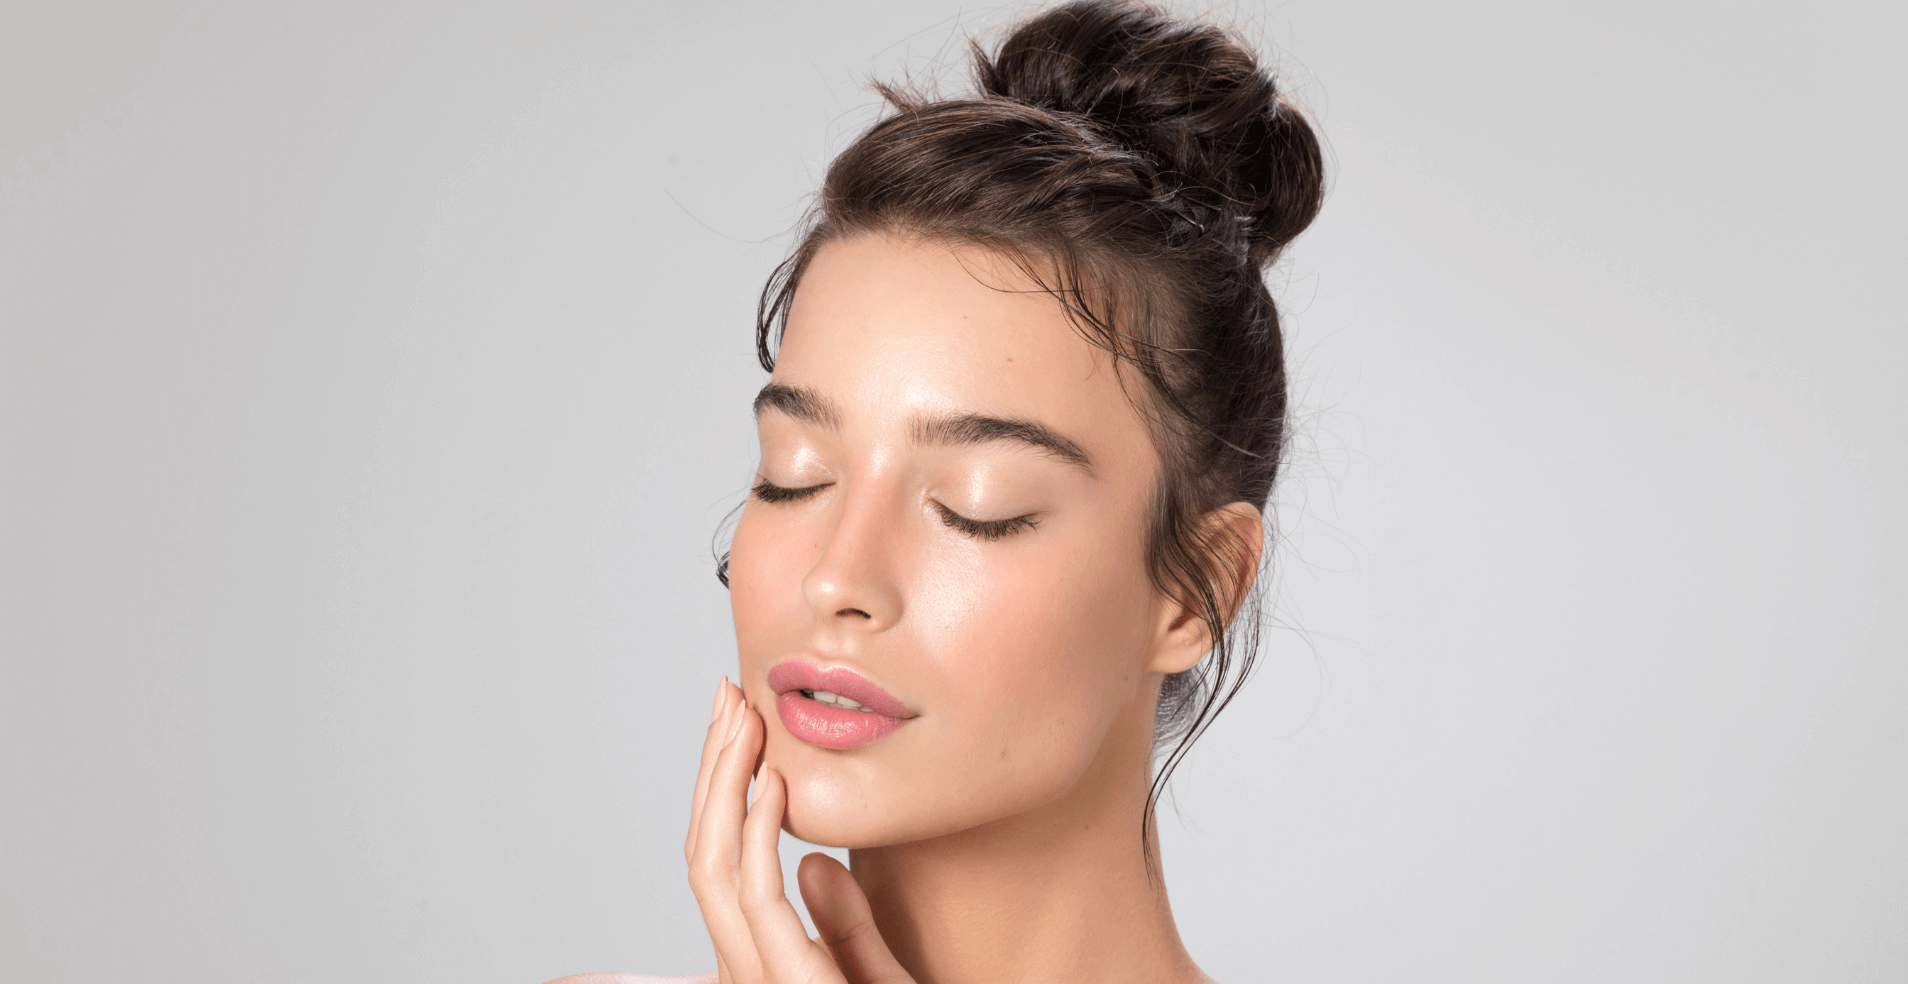 Microneedling Benefits For Different Skin Concerns at L'atelier Aesthetics in Harley Street